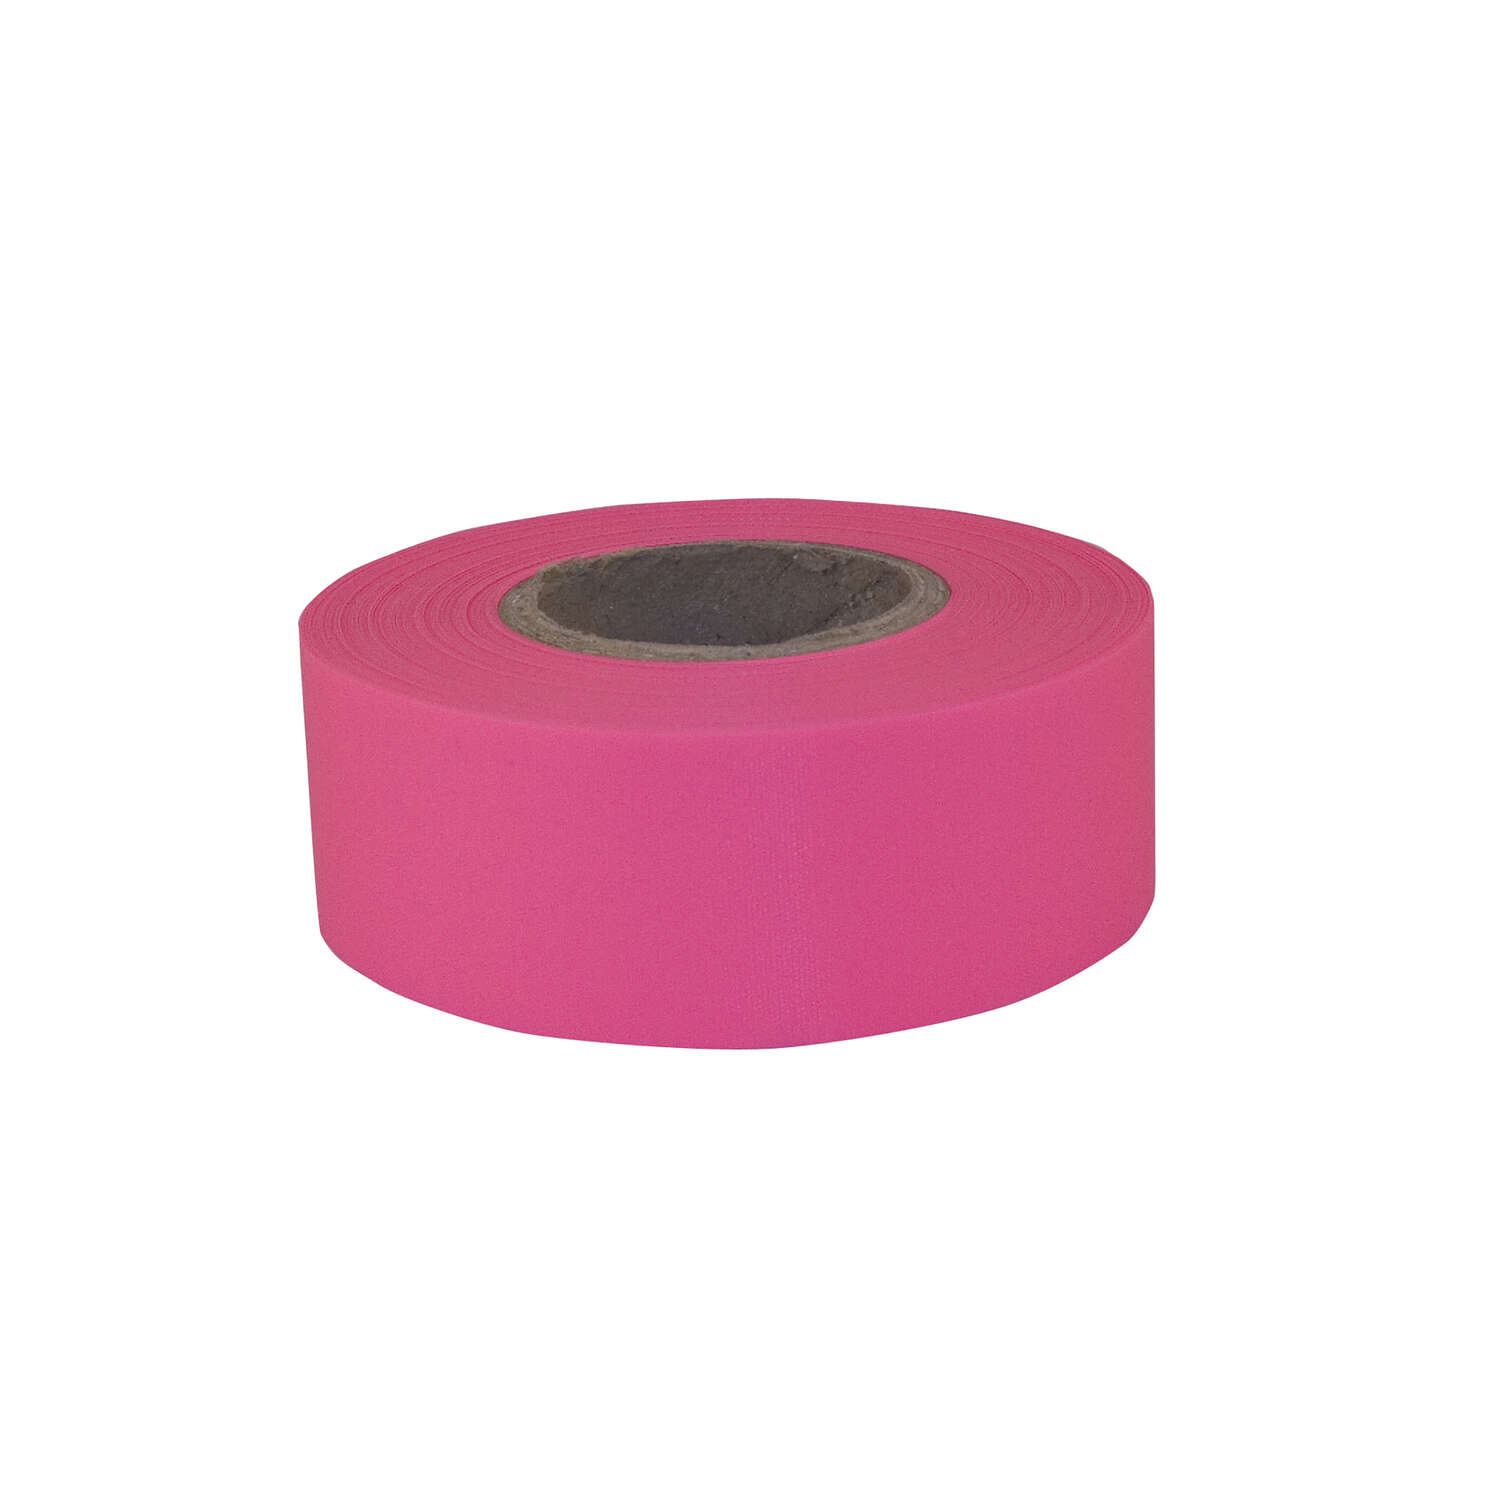 C.H. Hanson  Sub-Zero  150 ft. L x 1.2 in. W PVC  Flagging Tape  Fluorescent Pink